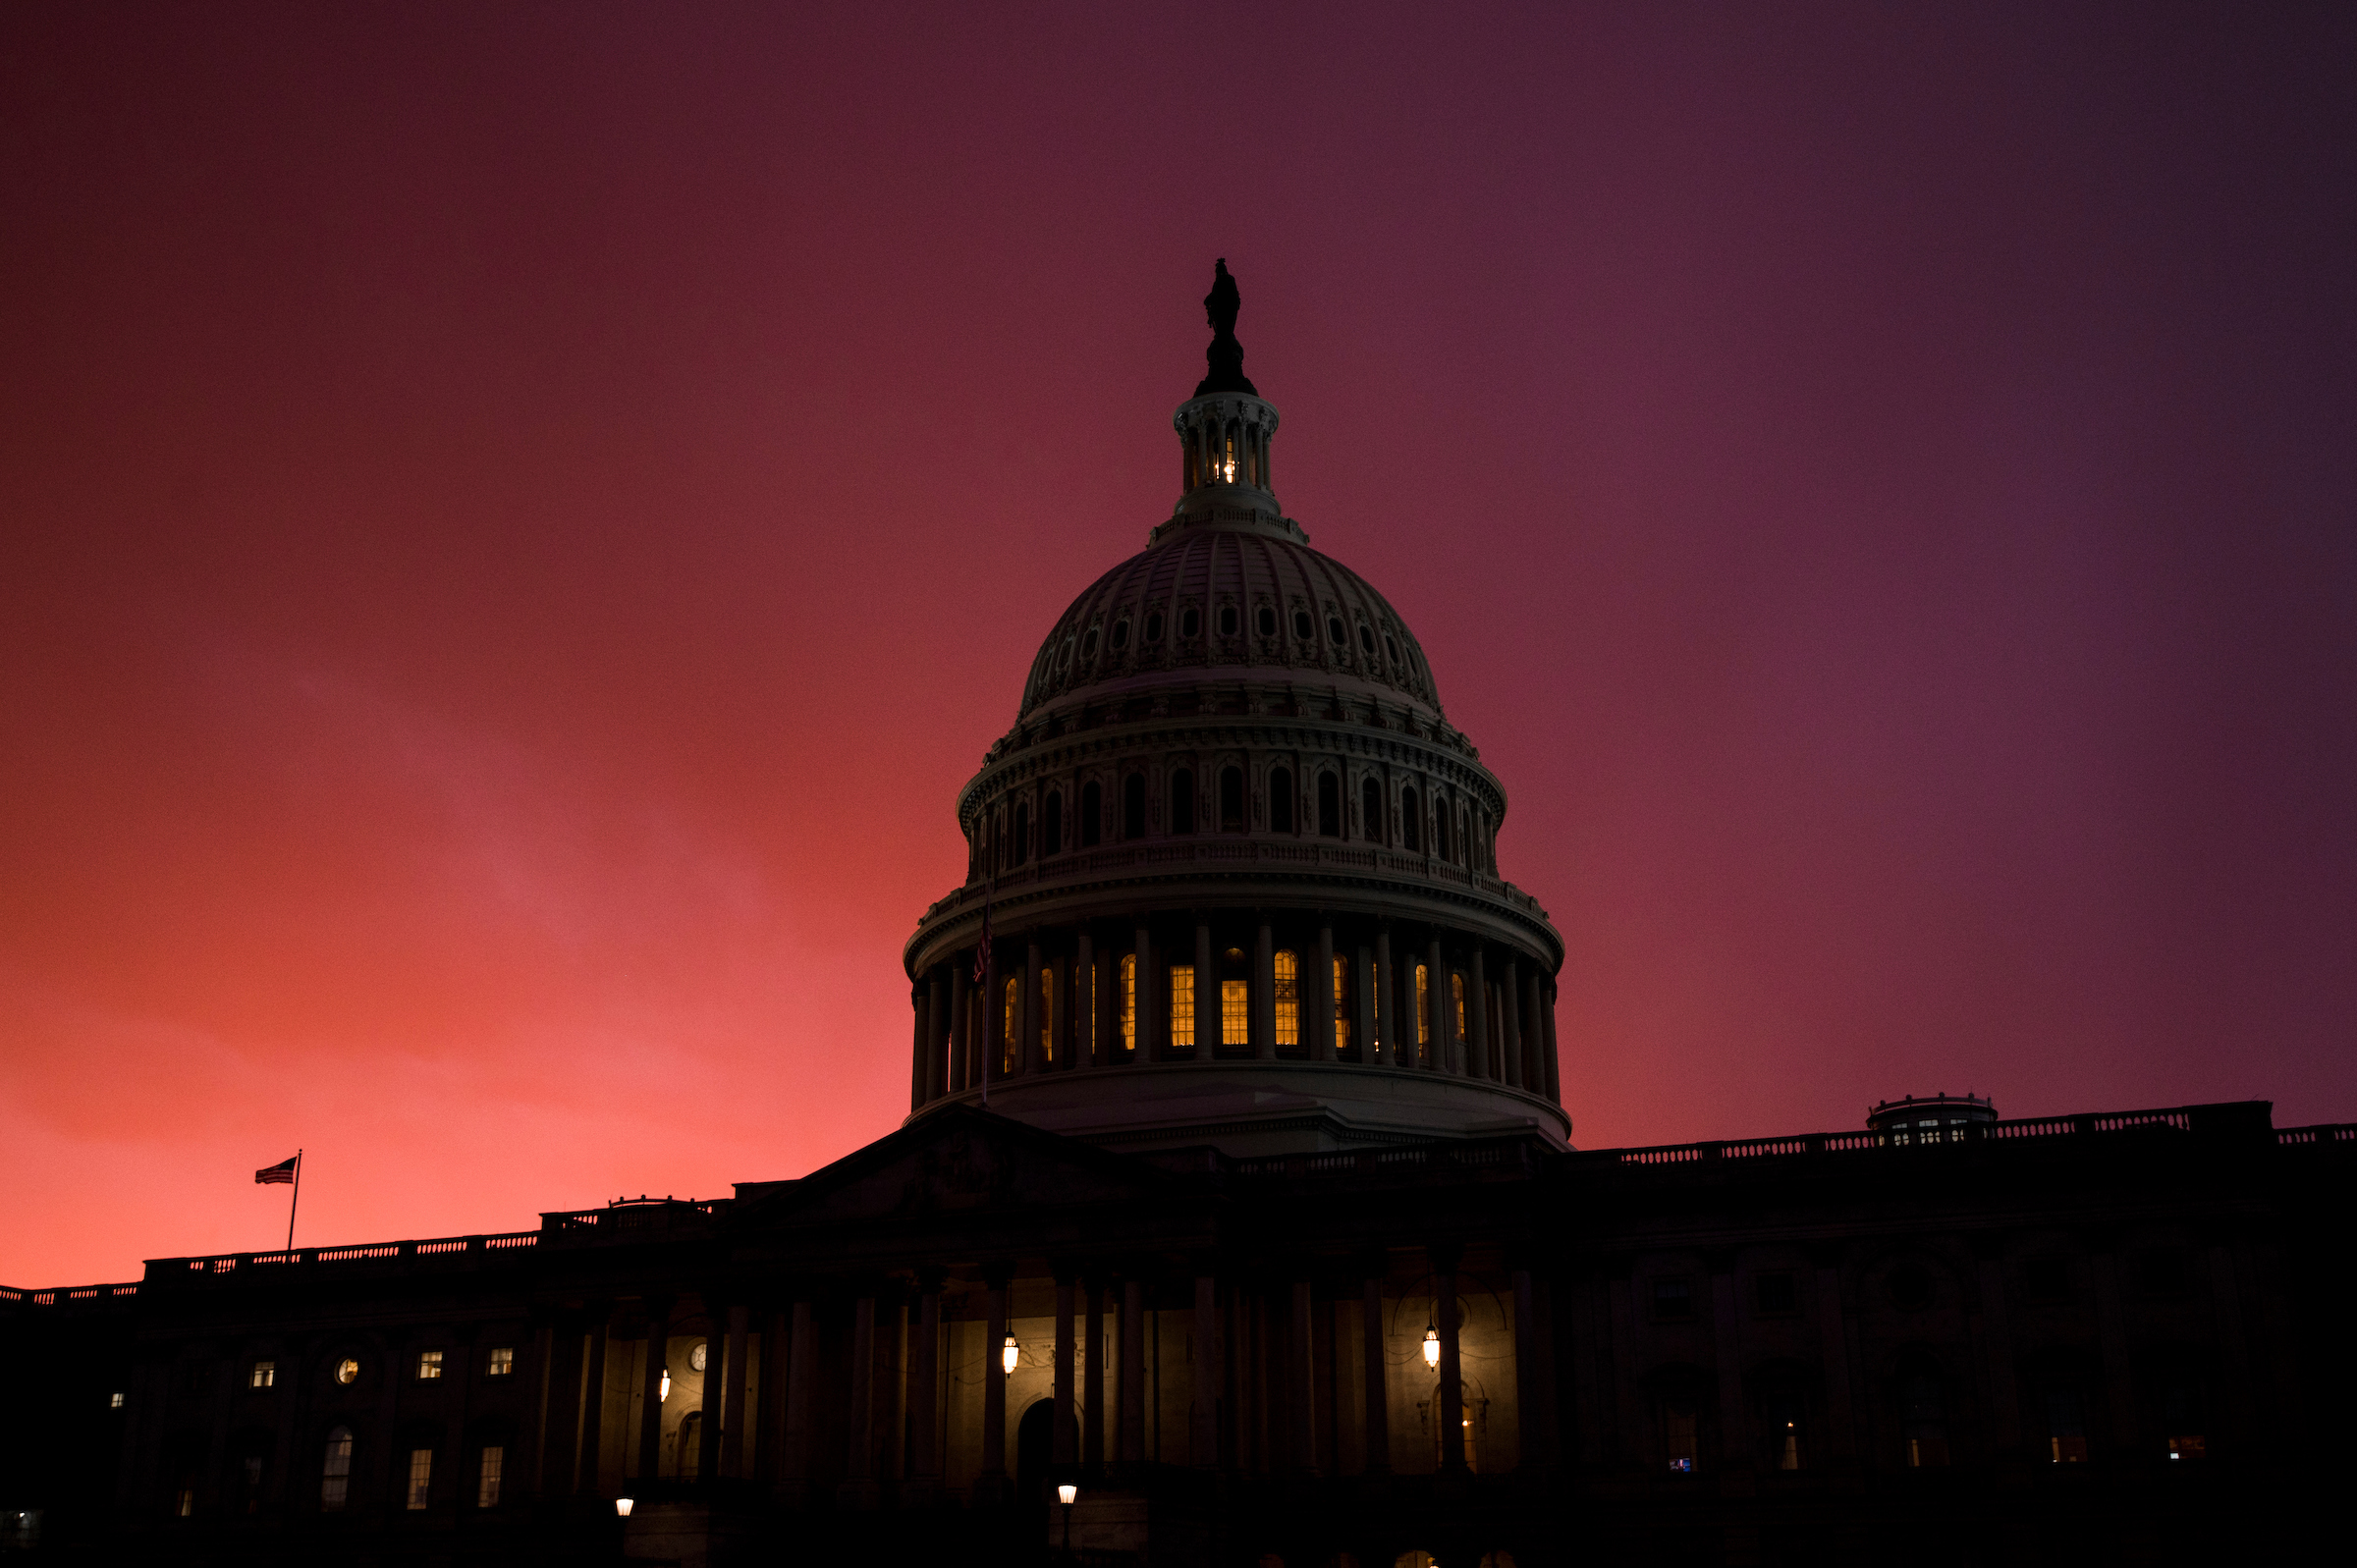 Key Votes 2019: Amid partisan acrimony, legislative wins in Congress were hard to come by